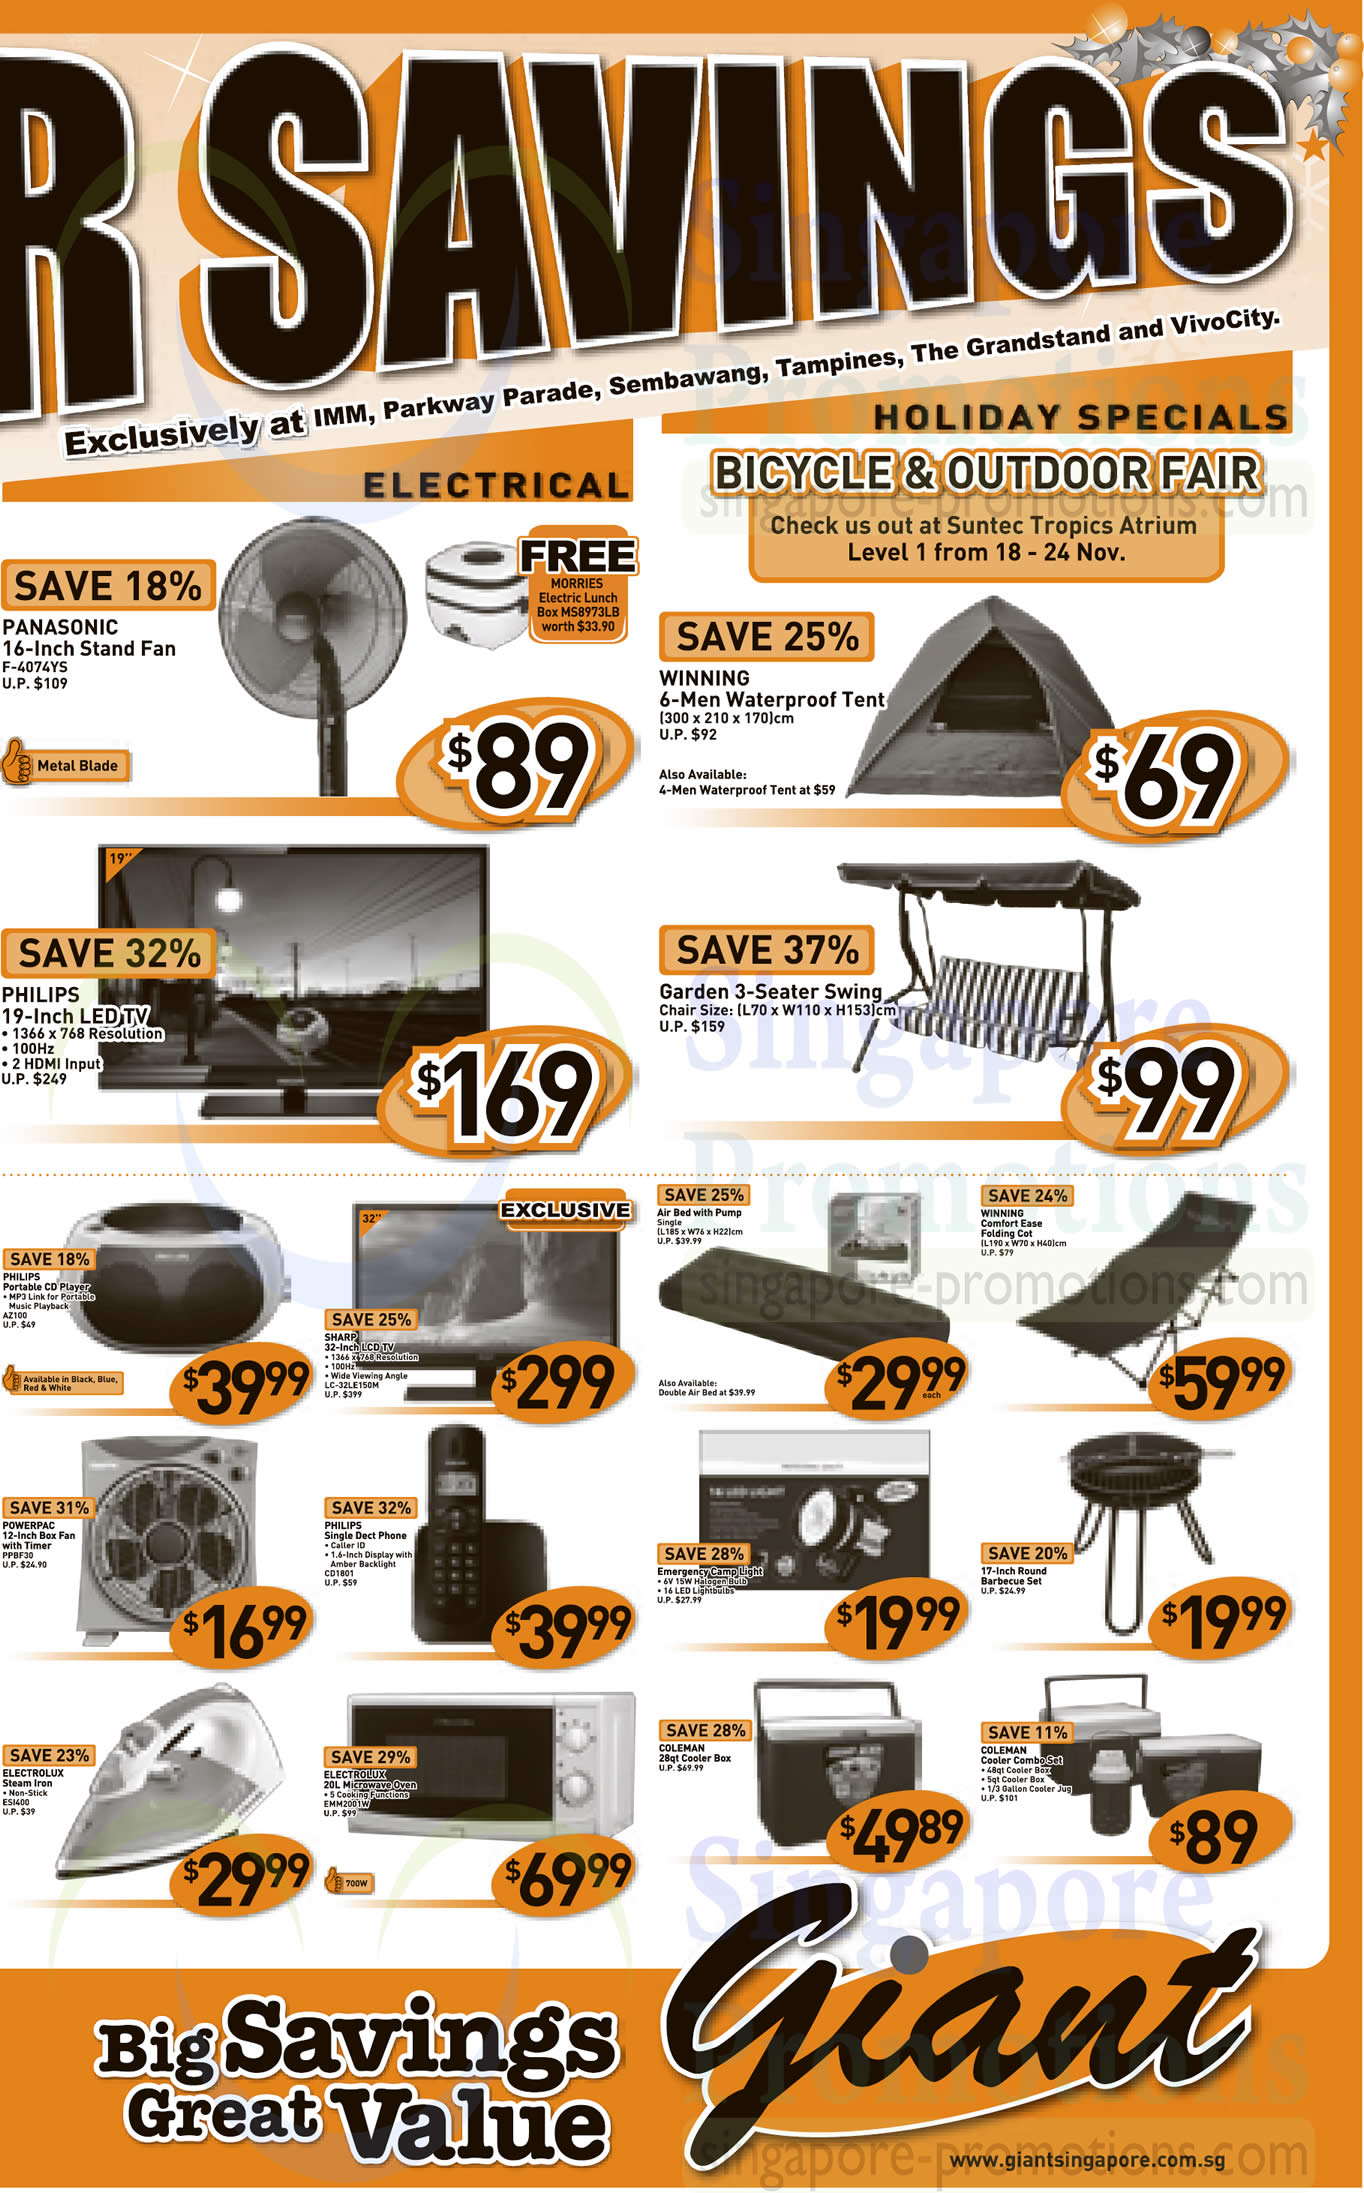 Electrical Applainces, Holiday Specials